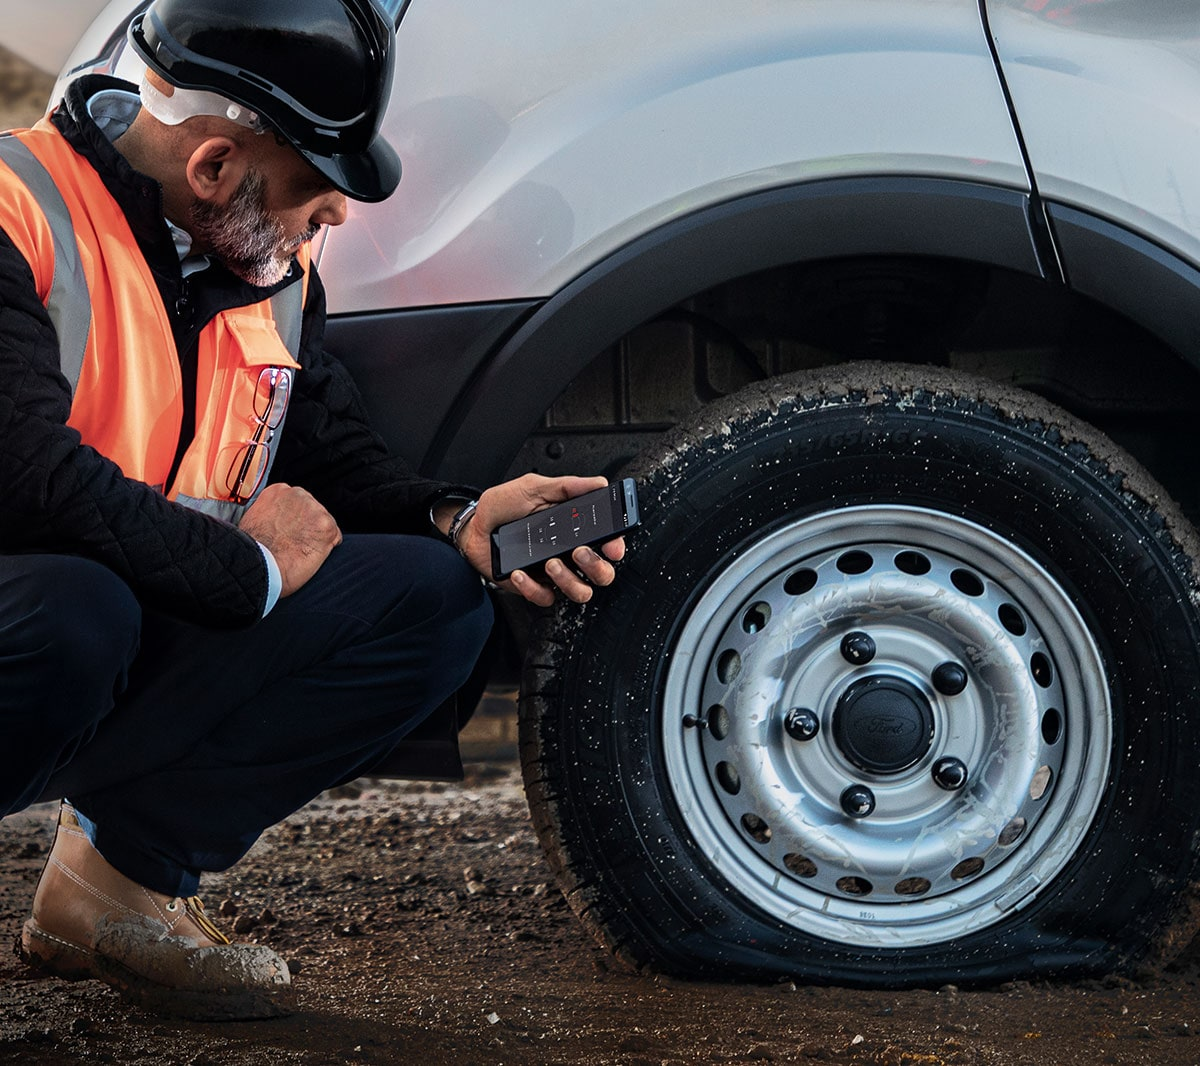 Service person in high viz jacket checking flat tyre